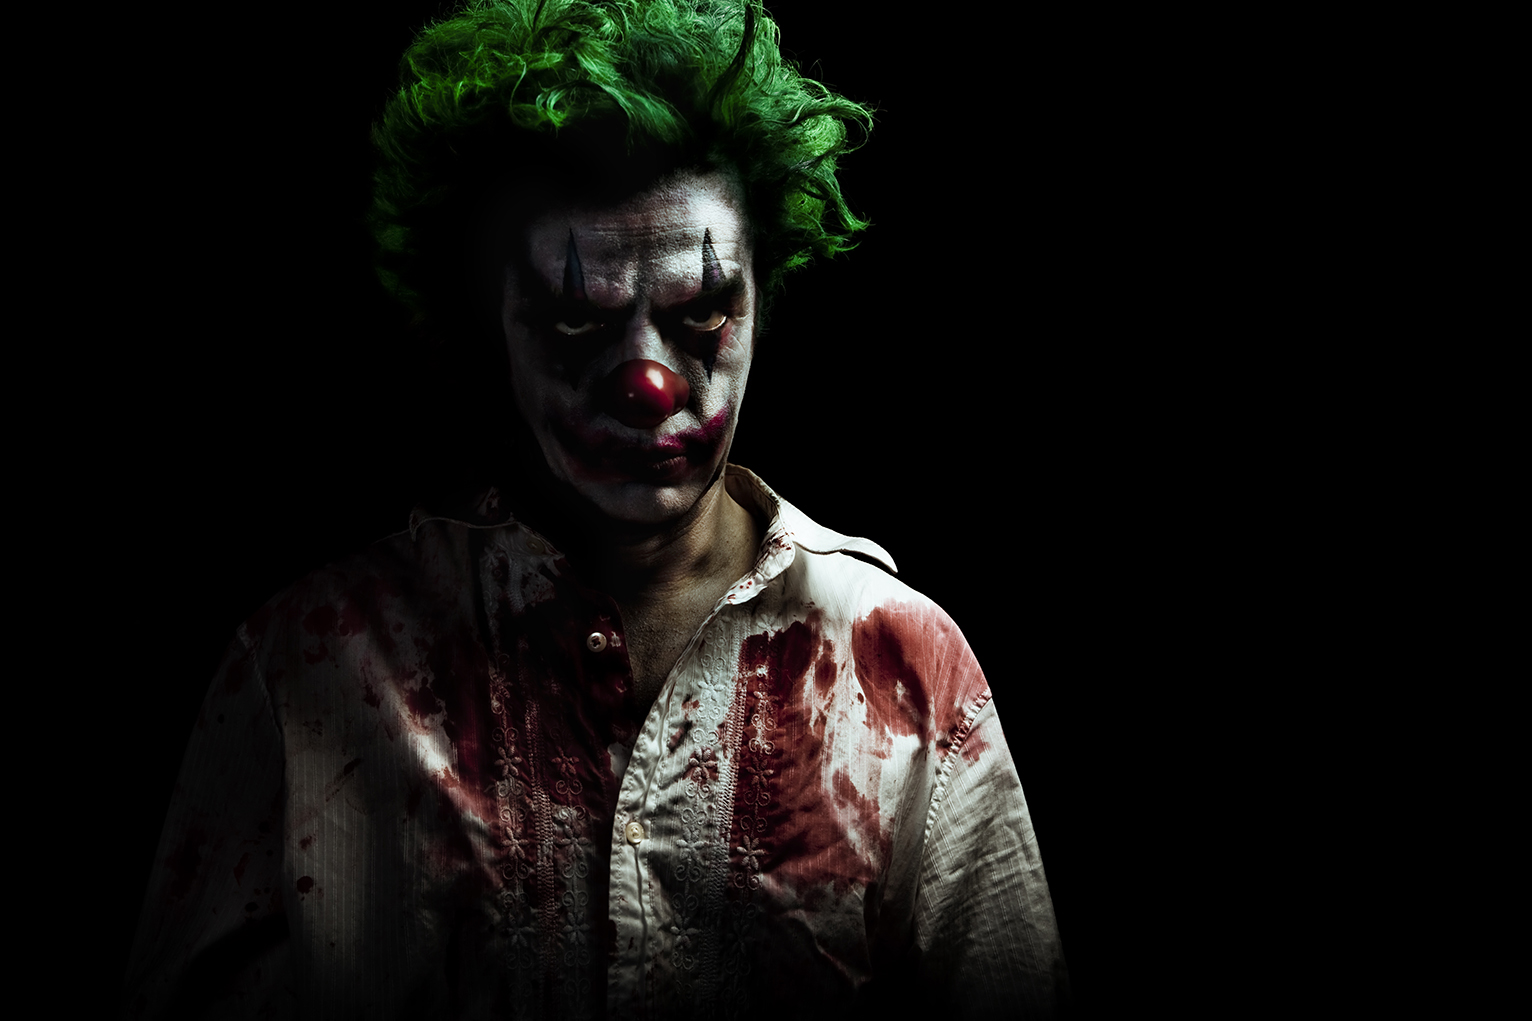 Clowns Are Scaring People Near the Woods, Out in the Open ... Creepy Pictures